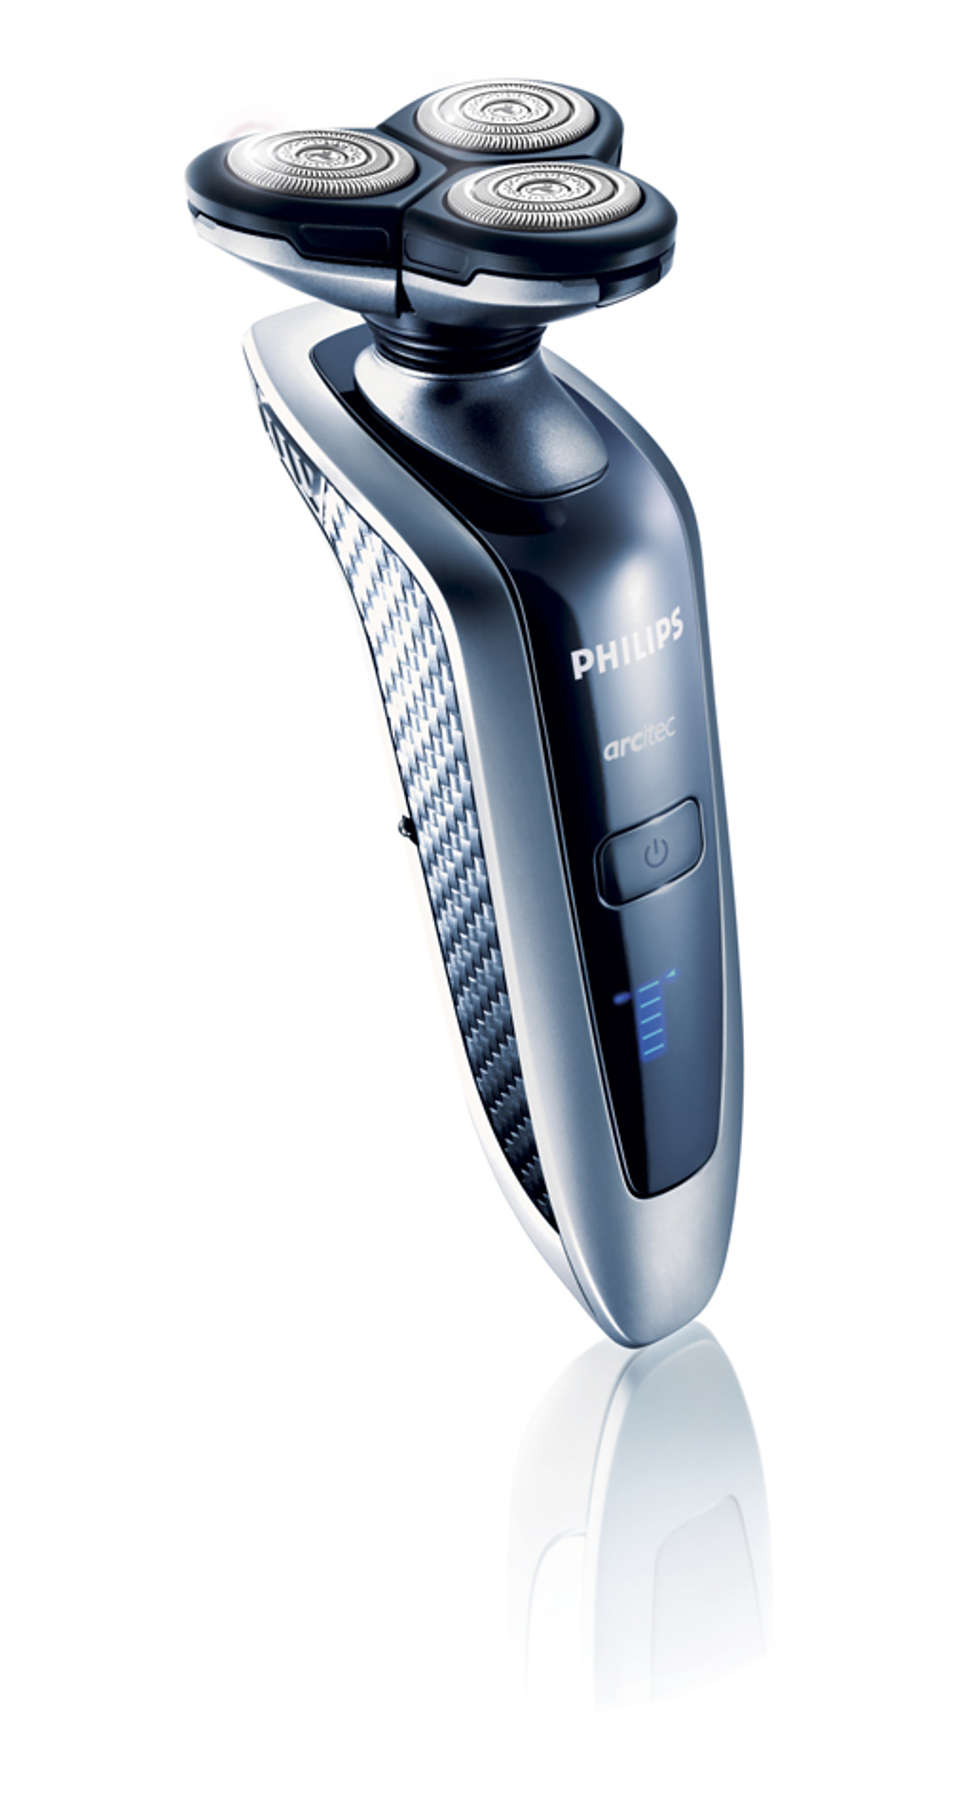 The world's closest rotary shave